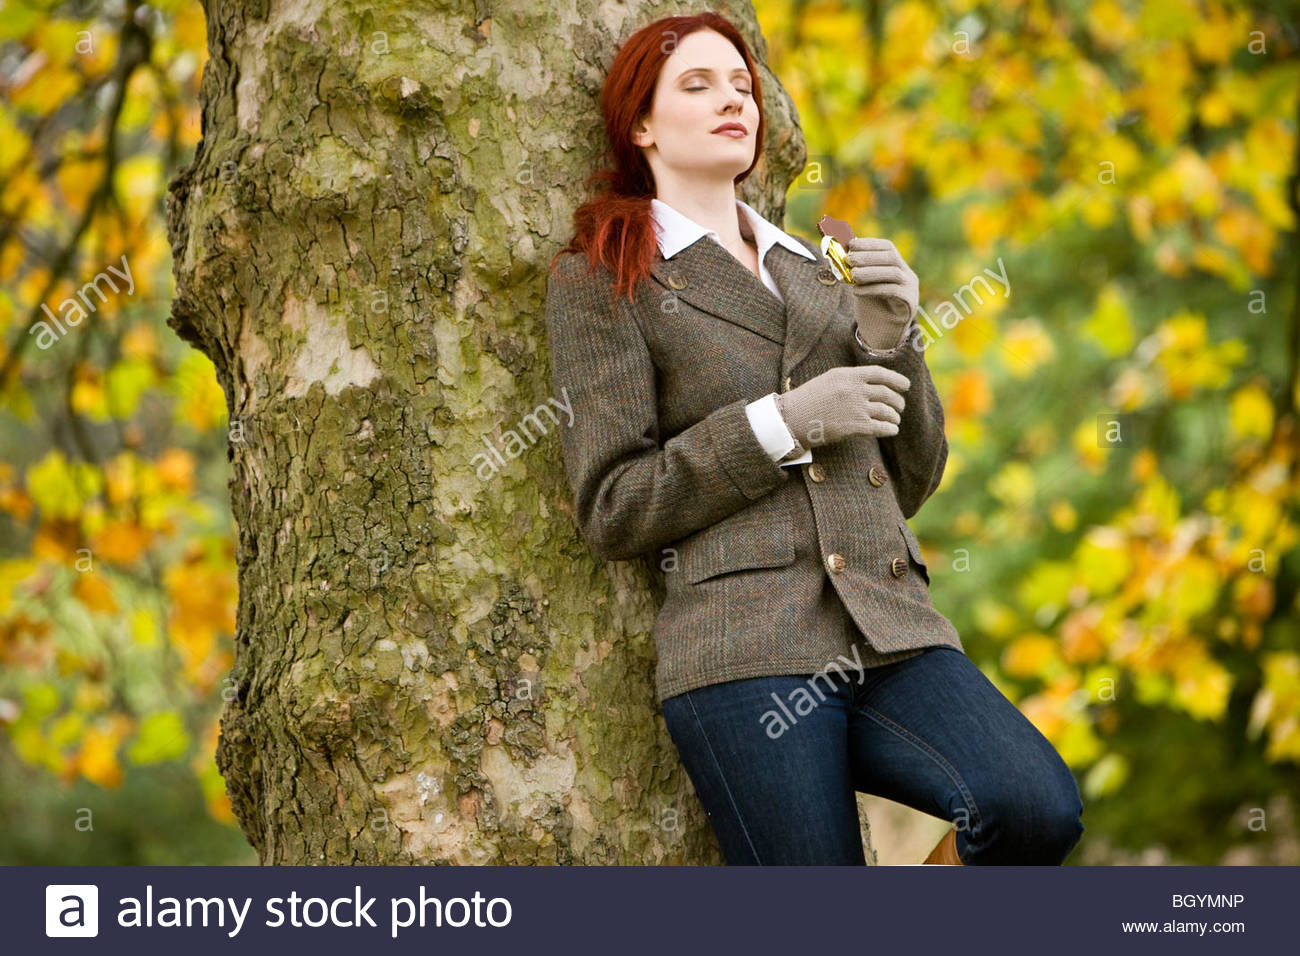 A young woman leaning against a tree, eating chocolate - Stock Image